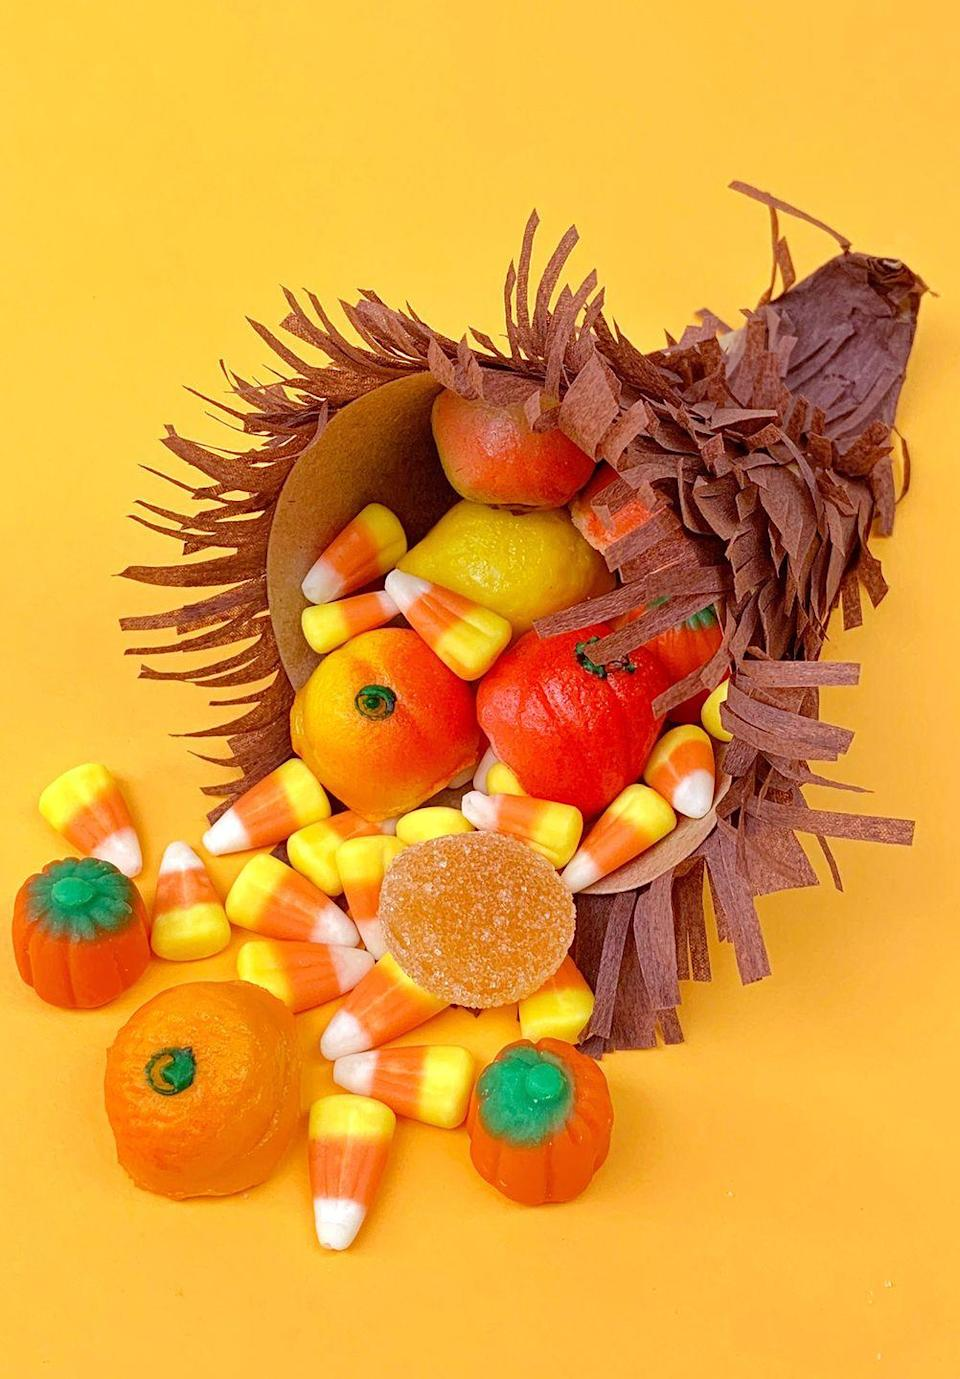 """<p>Typically, cornucopia are stuffed with an assortment of fresh fruits and veggies. On one of the best holidays of the year? Sweets take over. </p><p><em><a href=""""https://www.happinessishomemade.net/candy-cornucopia-thanksgiving-craft/"""" rel=""""nofollow noopener"""" target=""""_blank"""" data-ylk=""""slk:Get the tutorial from Happiness Is Homemade »"""" class=""""link rapid-noclick-resp"""">Get the tutorial from Happiness Is Homemade »</a></em></p>"""